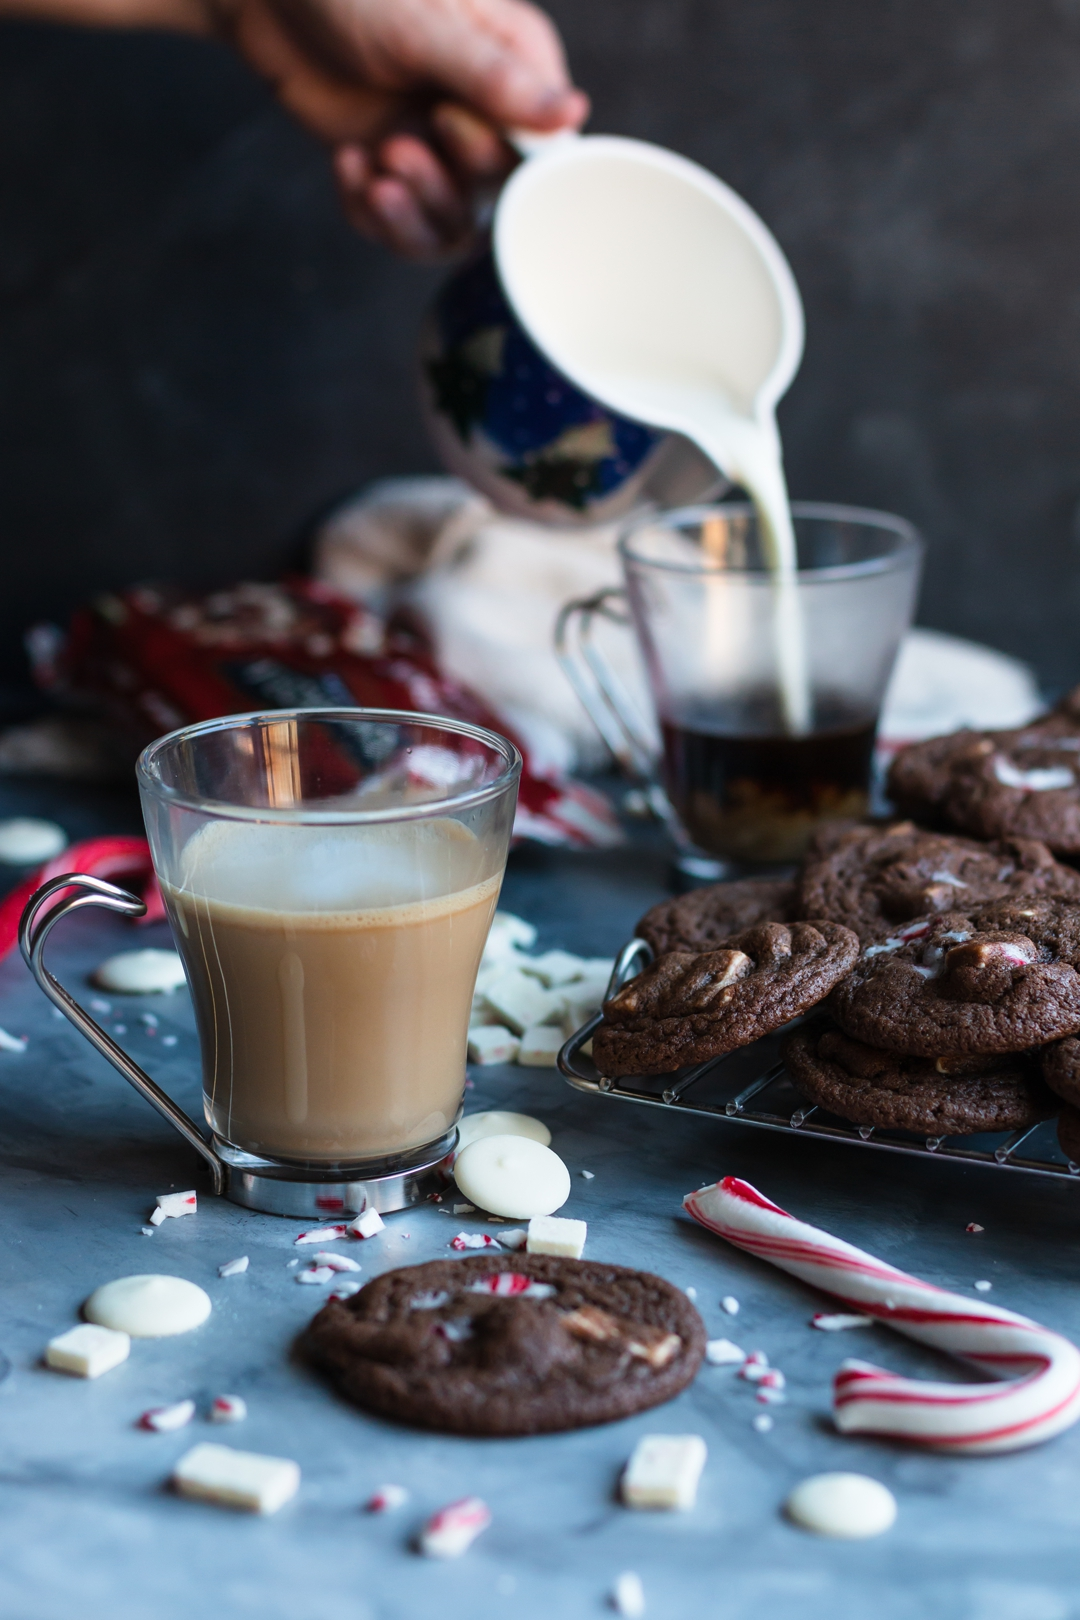 30 degree shot of a 3/4 filled latte cup, cookies, candy canes, white chocolate, and hand pouring milk into anther cup in the background.